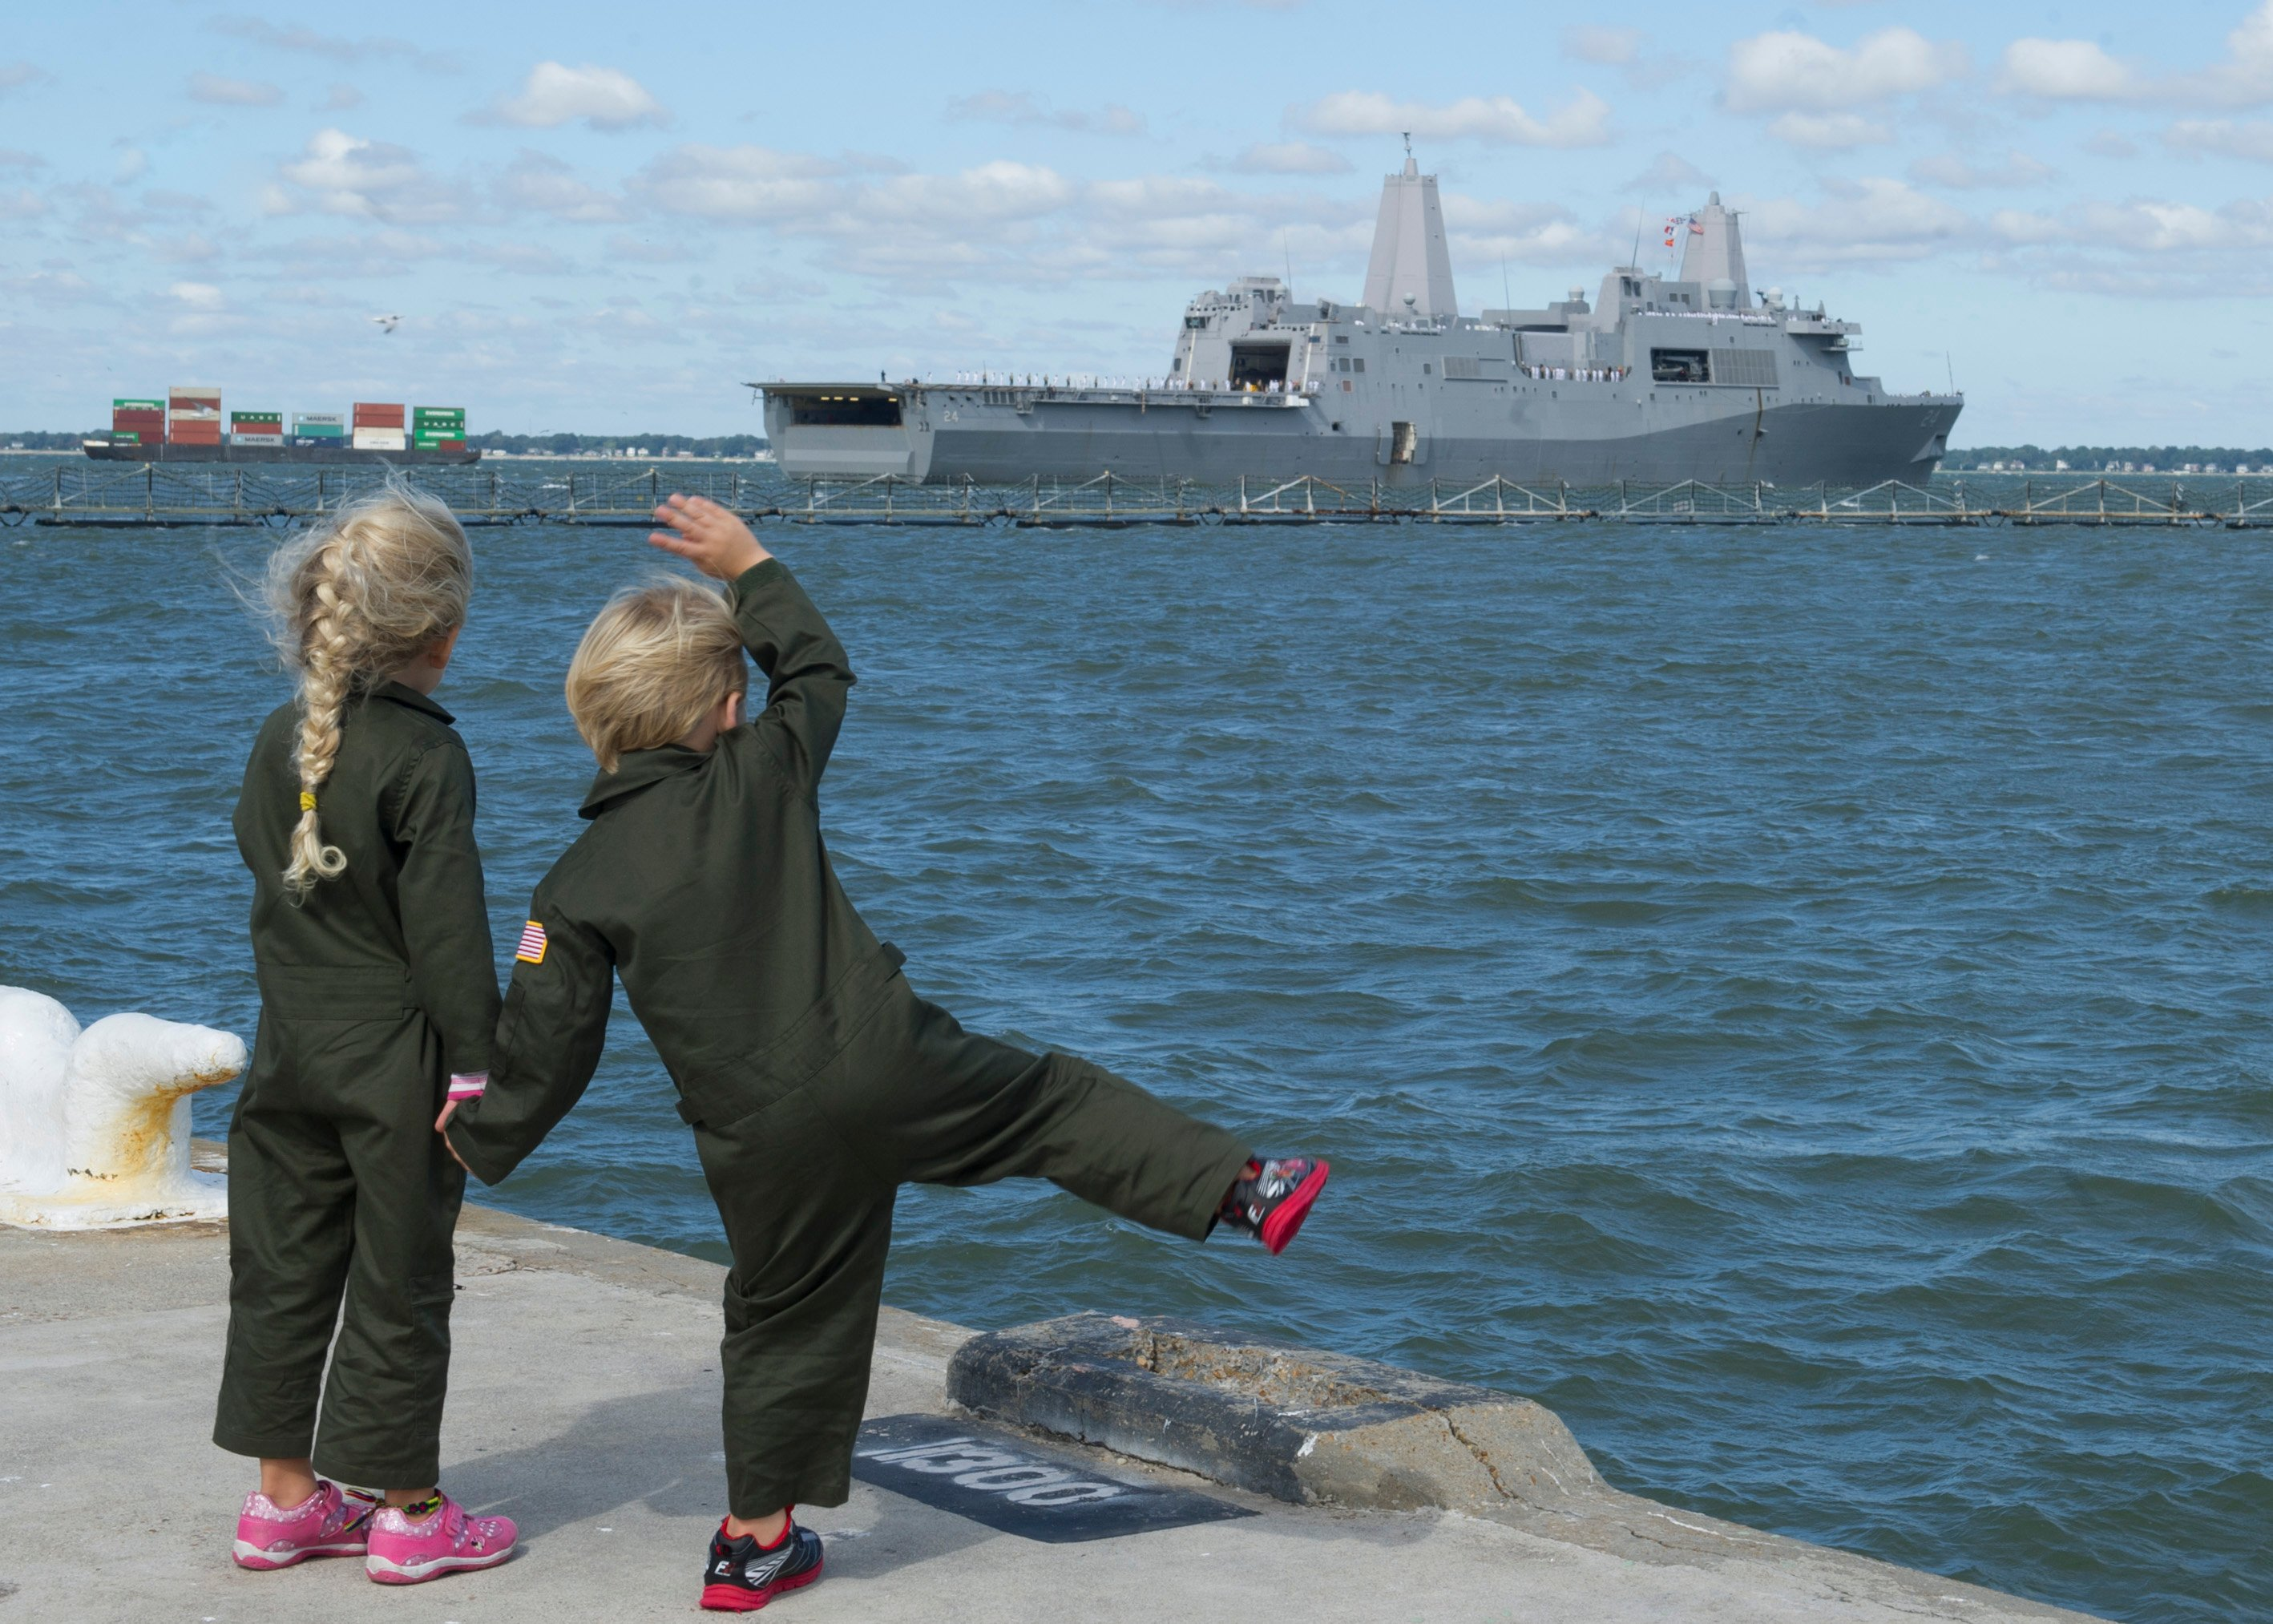 Children wave goodbye to their father, Lt. Chris Robinson, deploying aboard the amphibious transport dock USS Arlington (LPD 24). Arlington deployed as part of the Kearsarge Amphibious Ready Group on Oct. 6, 2015. US Navy photo.